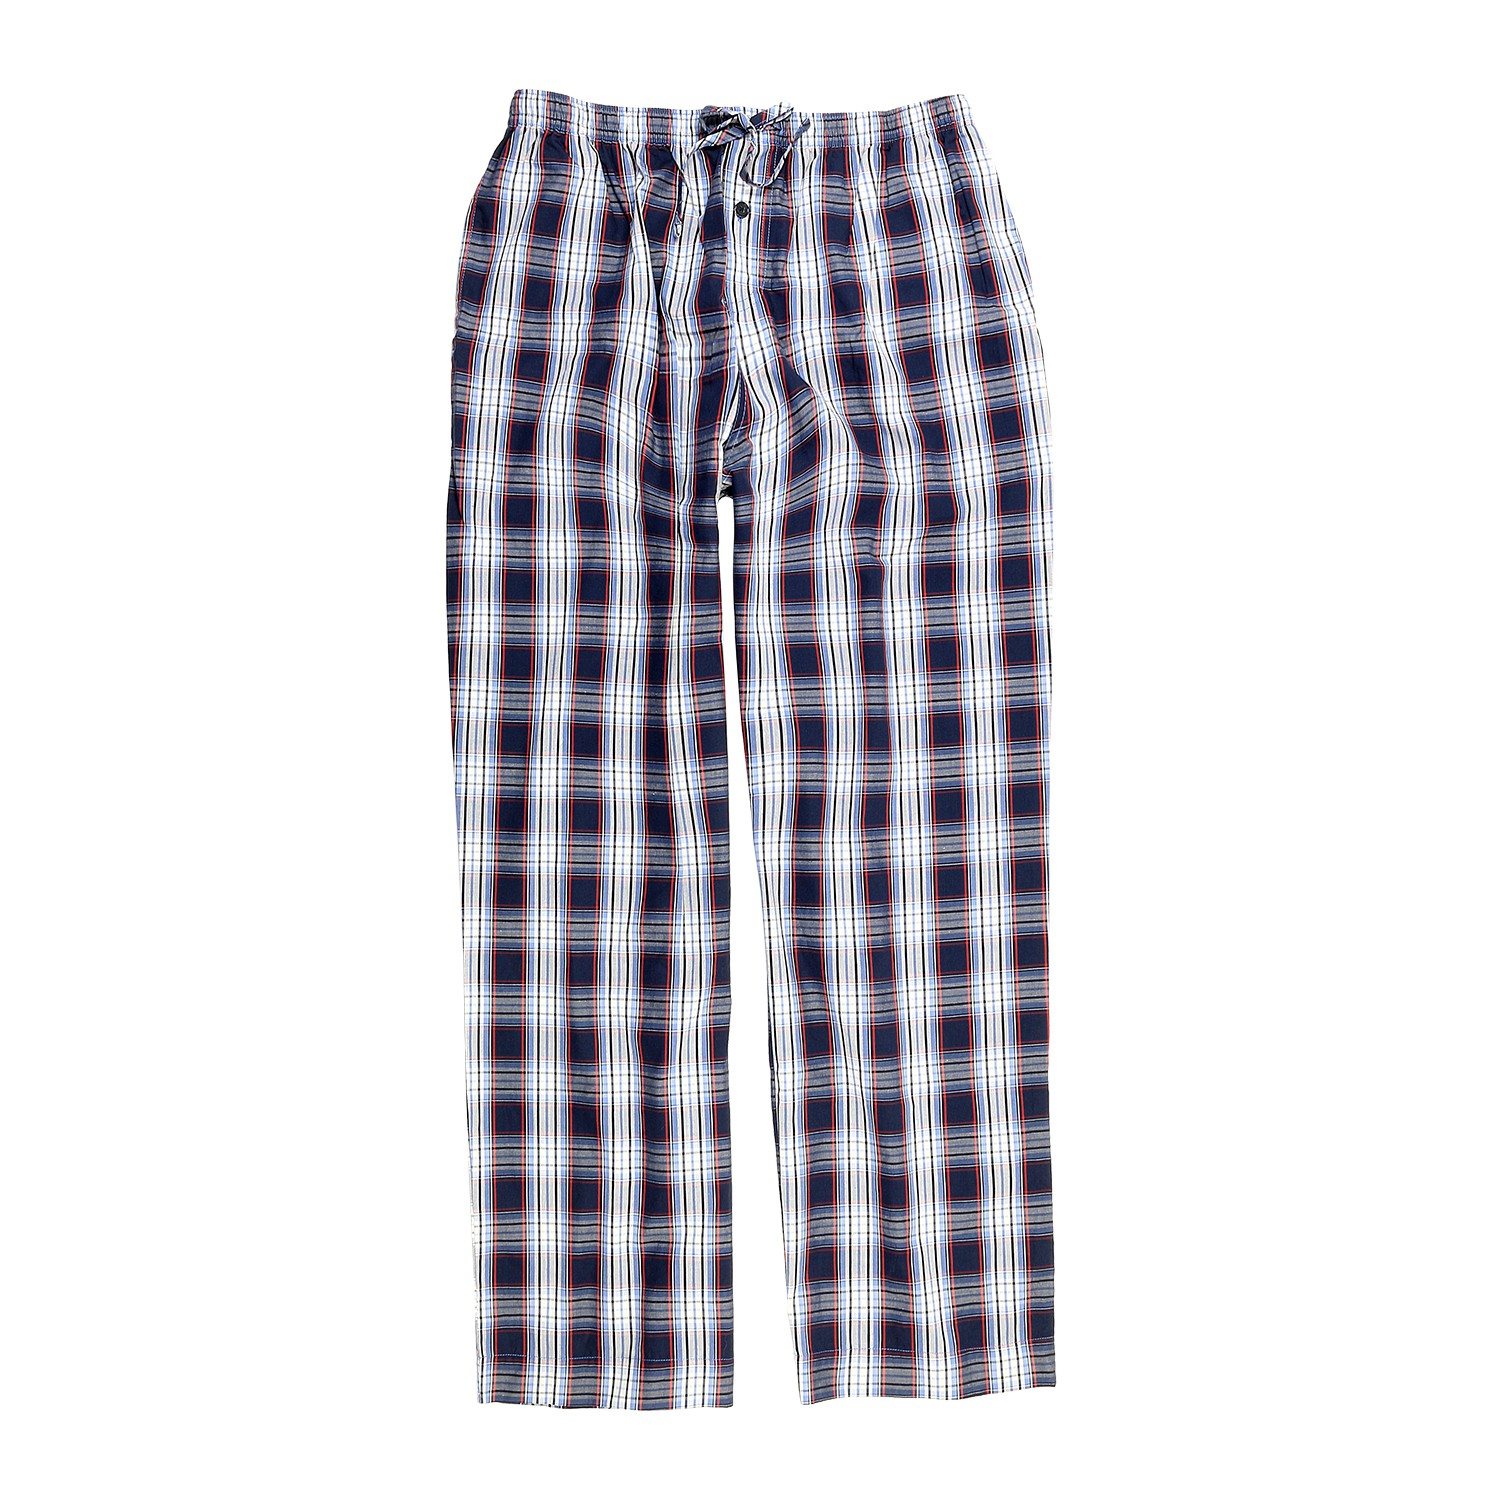 Detail Image to Pyjamas woven plaid from Jockey in extra large sizes up to 6XL and 110